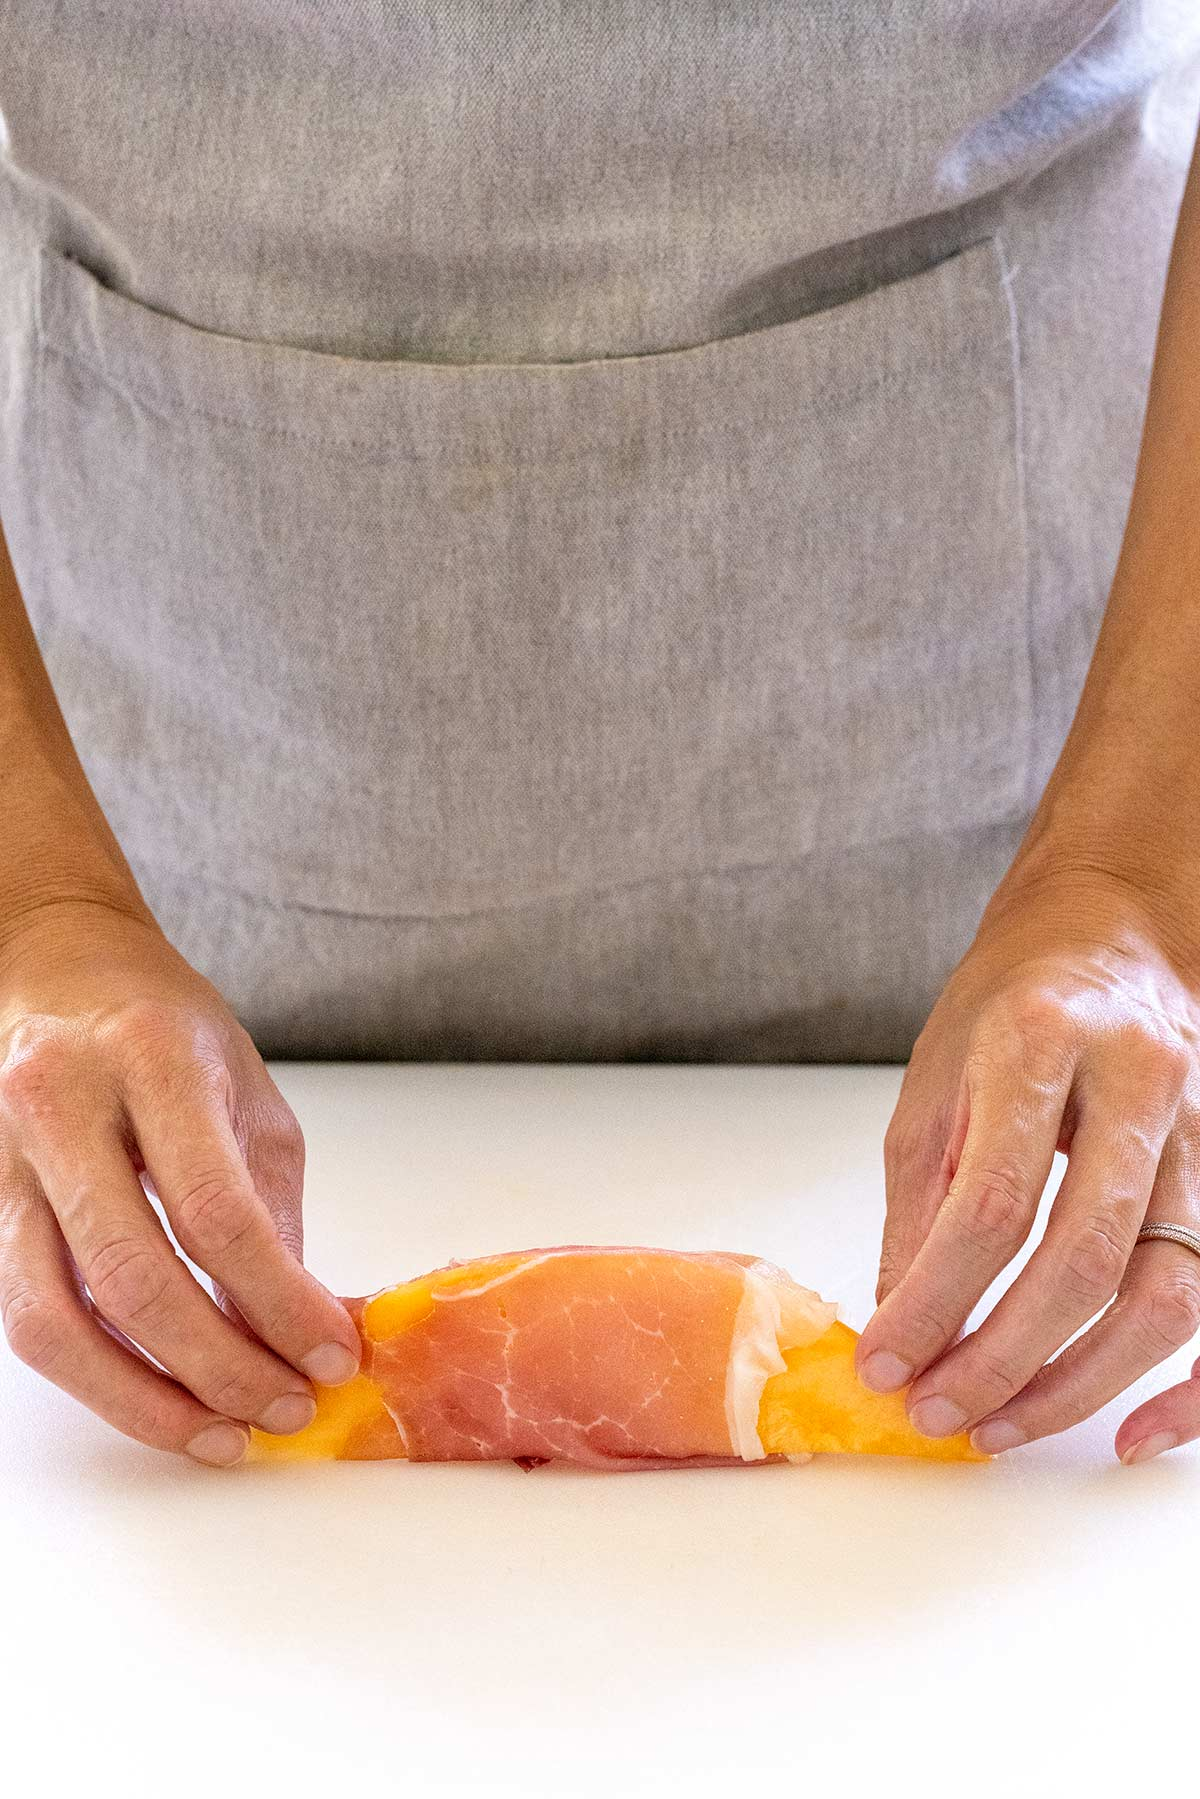 wrapping thinly sliced ham around a cantaloupe wedge